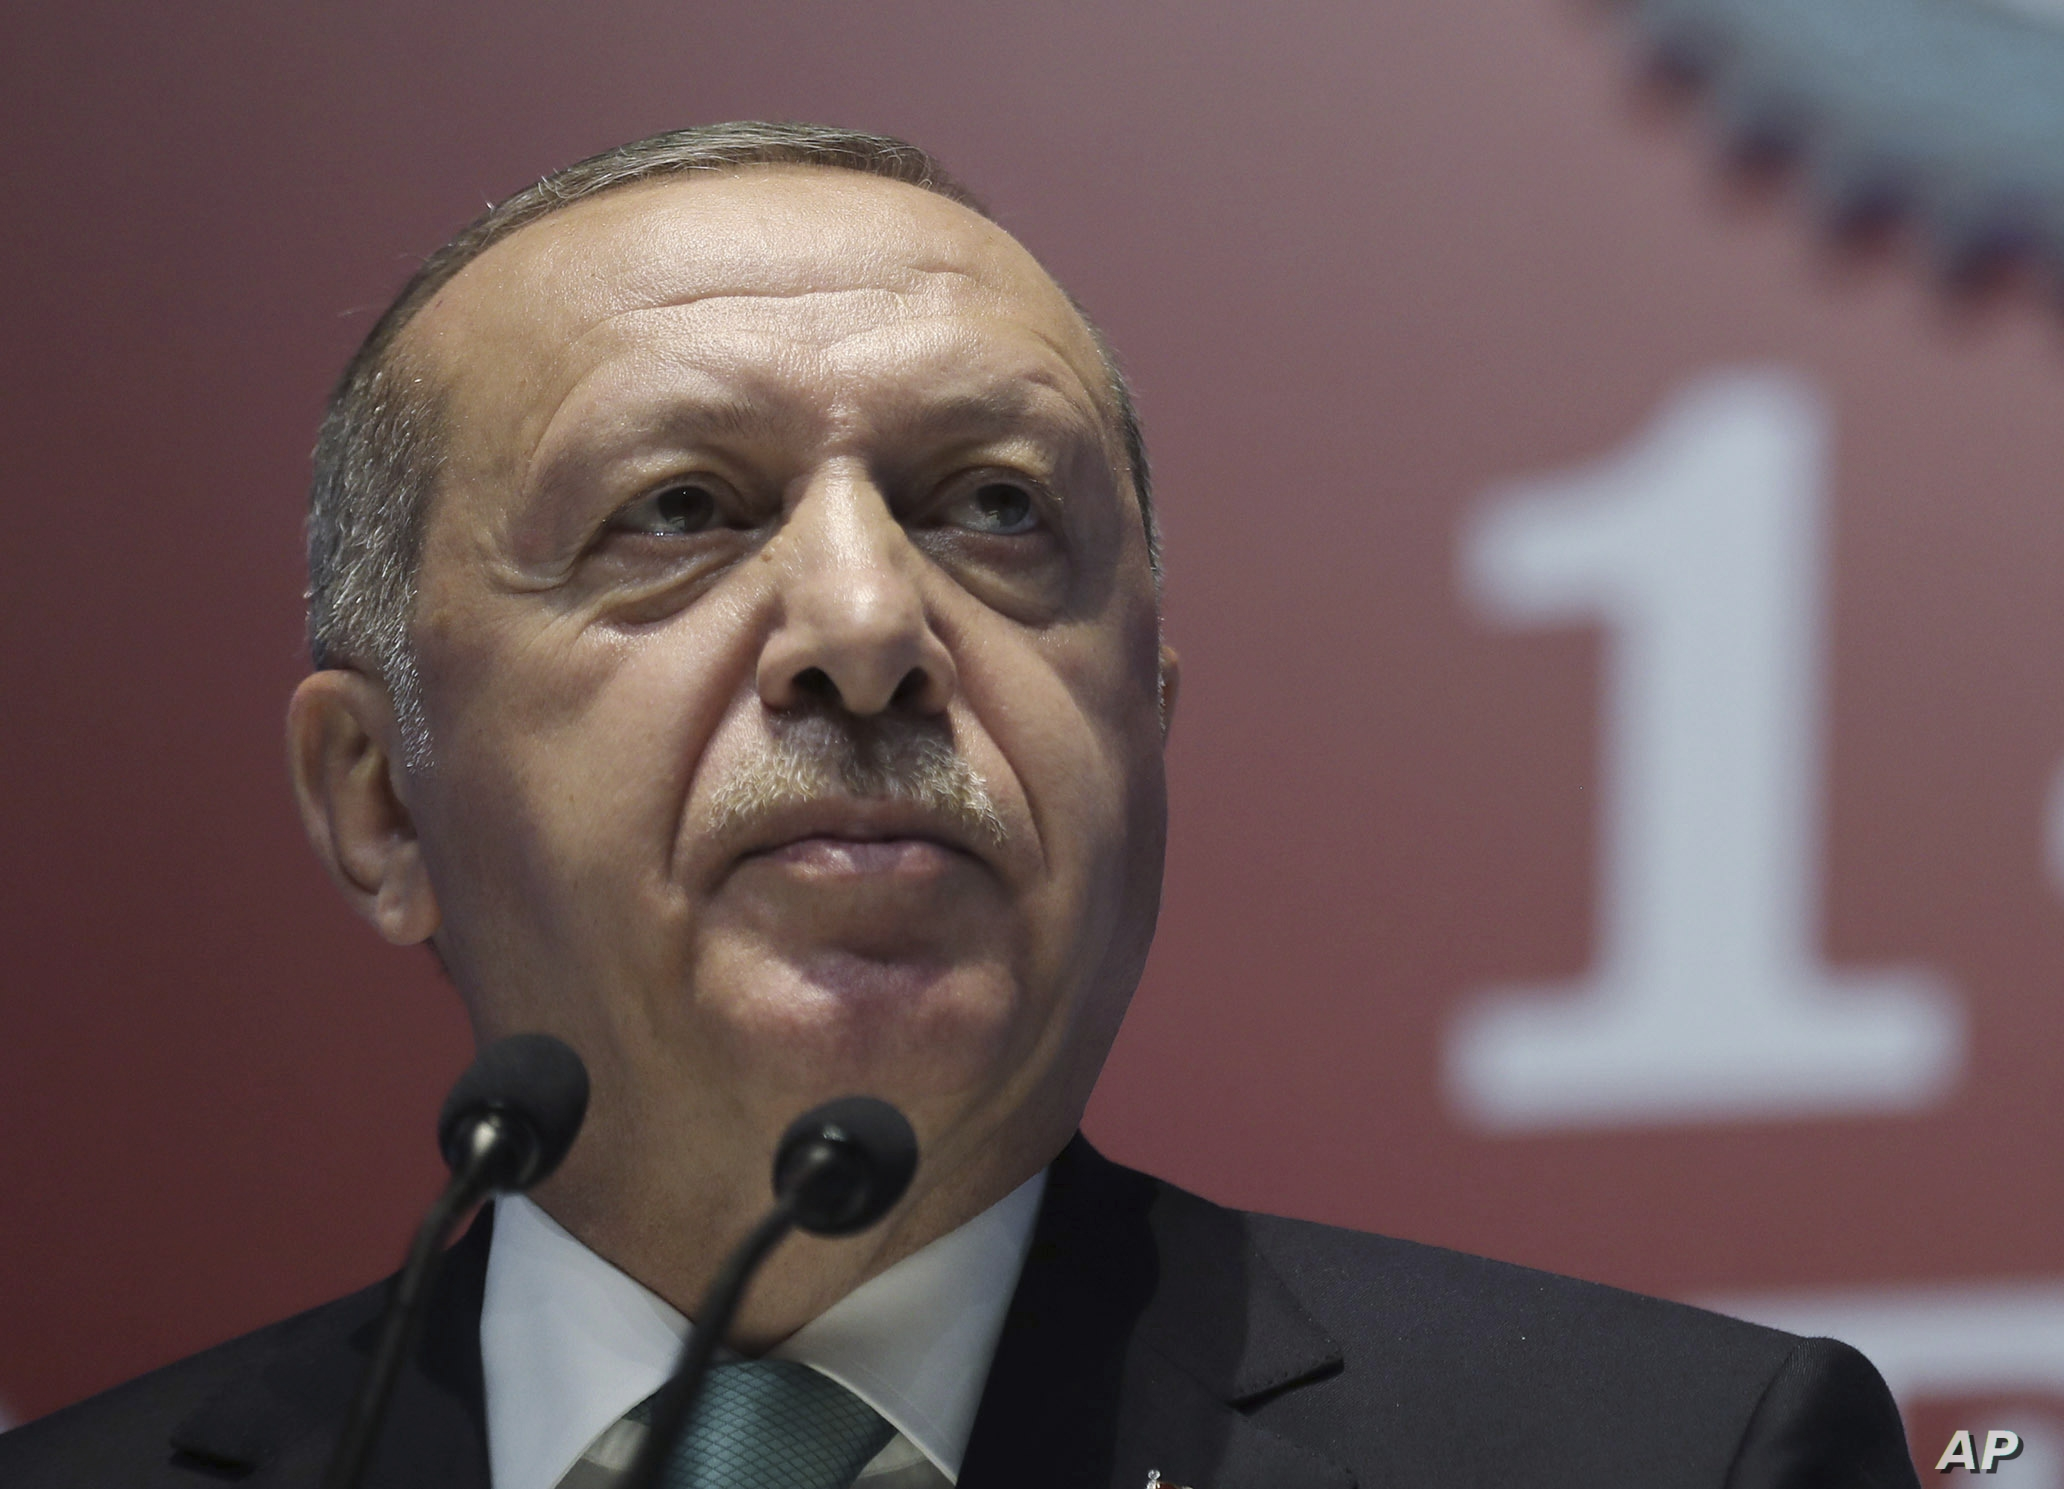 Turkey's President Recep Tayyip Erdogan speaks during a meeting of a pro-government trade-union, in Ankara, Turkey, Wednesday, July 10, 2019. Erdogan has confirmed that he fired the Central Bank chief over his refusal to cut interest rates. Erdogan…